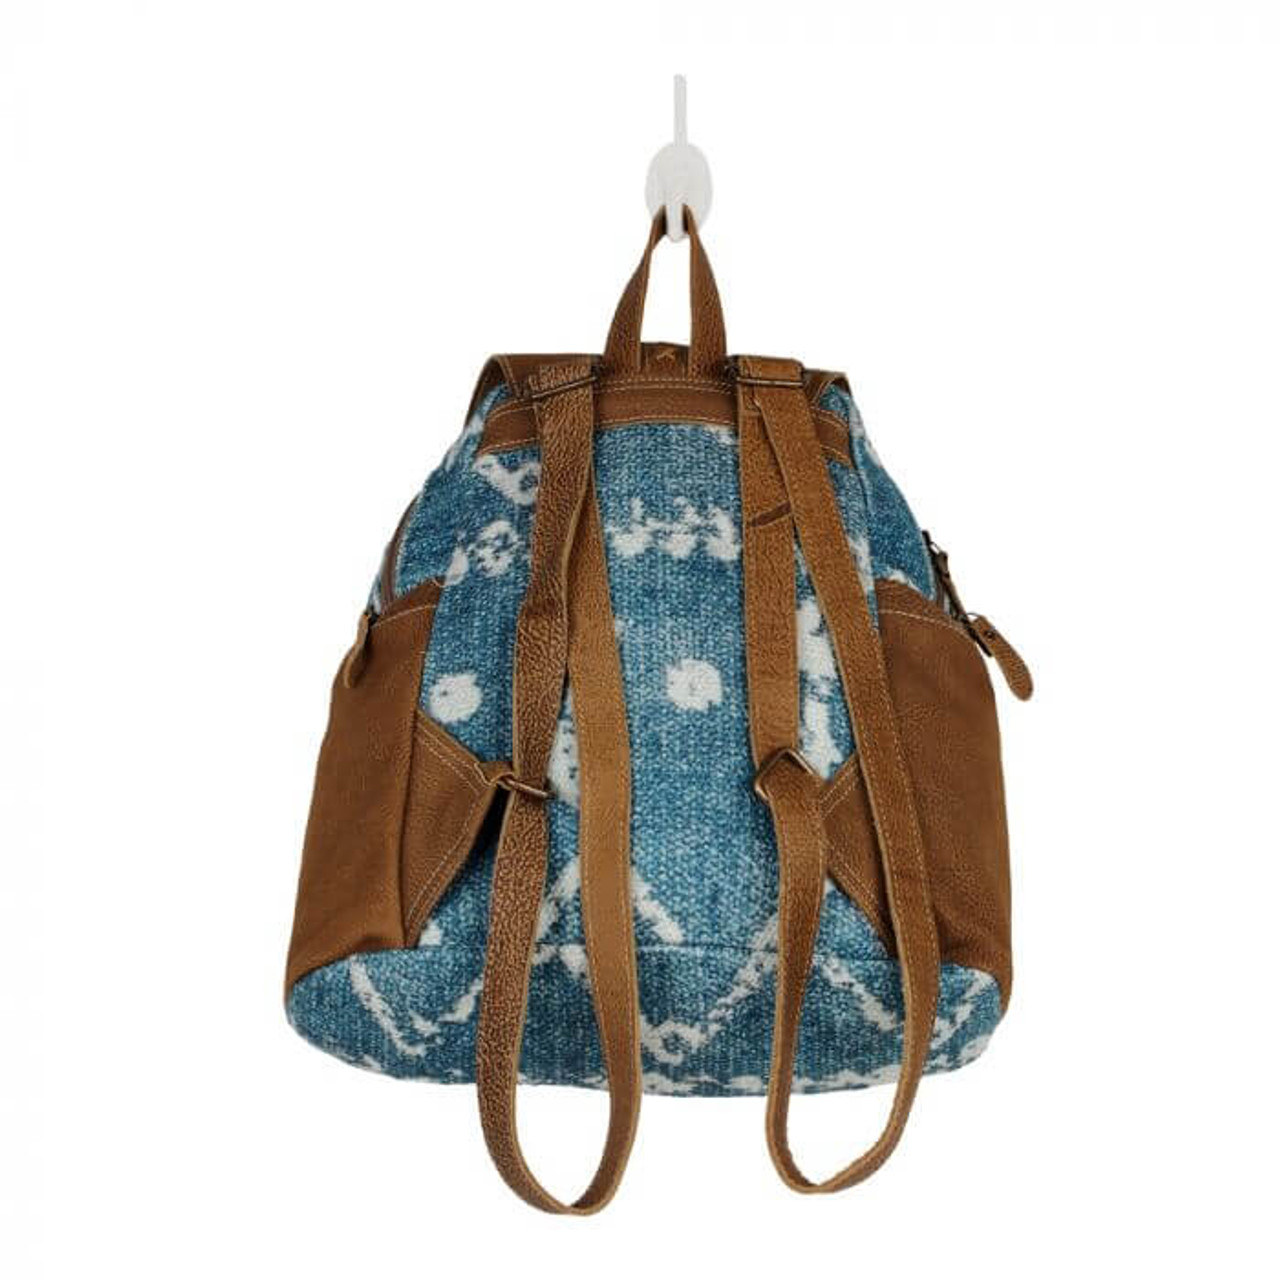 This hand-woven rug and leather backpack is a piece of perfection. With a beautiful blue and white print, this bag gives all the beachy summer feels. Zipper pockets on each side; zipper close at top with leather flap that snaps; handle and adjustable shoulder straps; fully lined interior with one large slip pocket